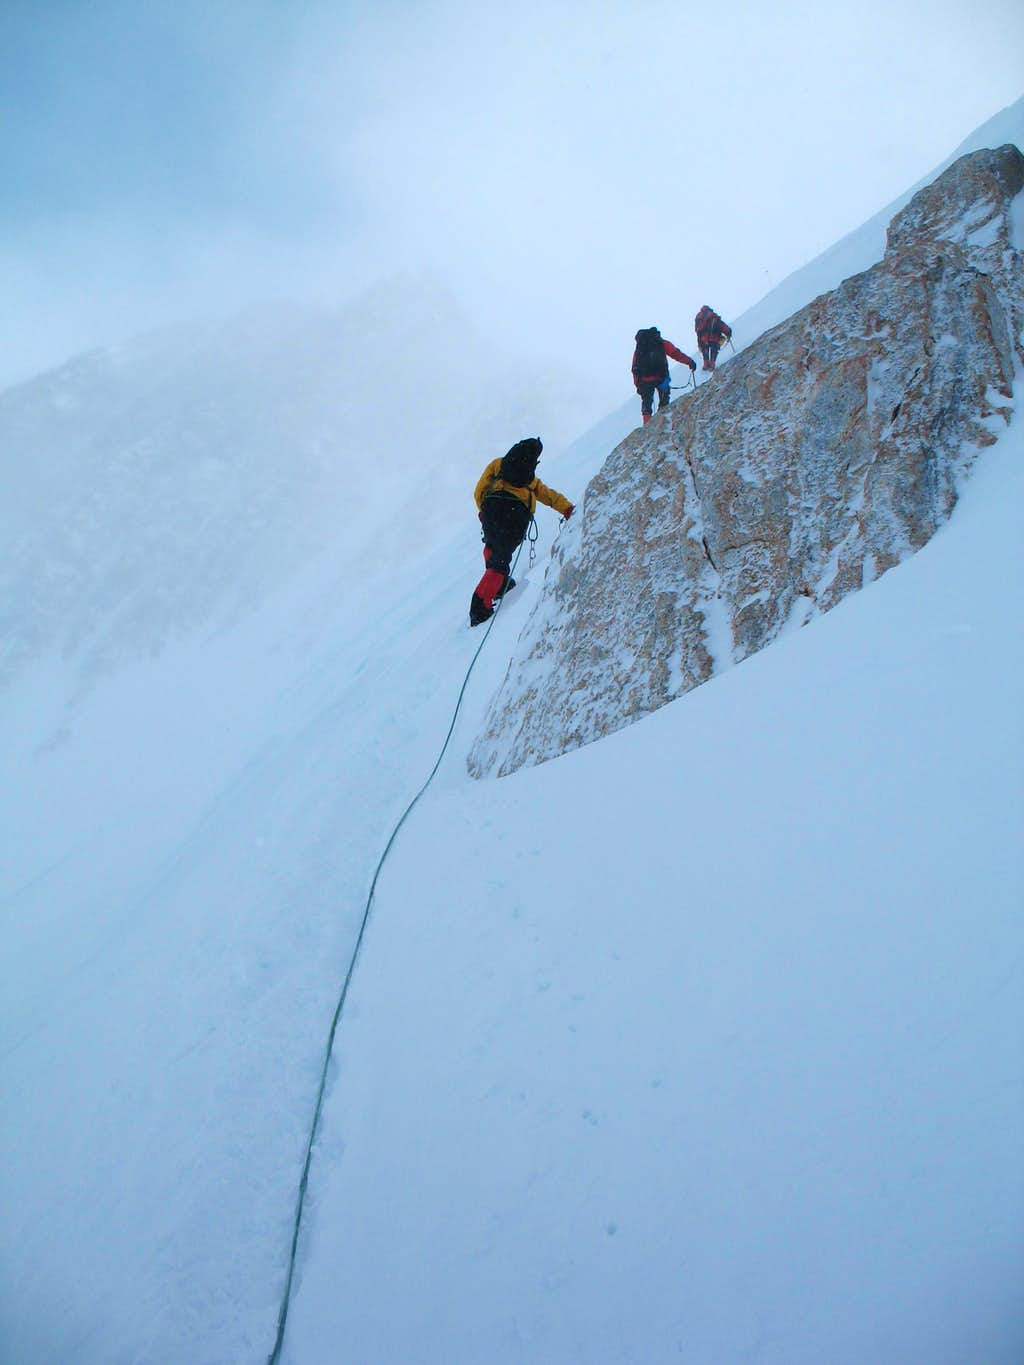 Heading to the summit